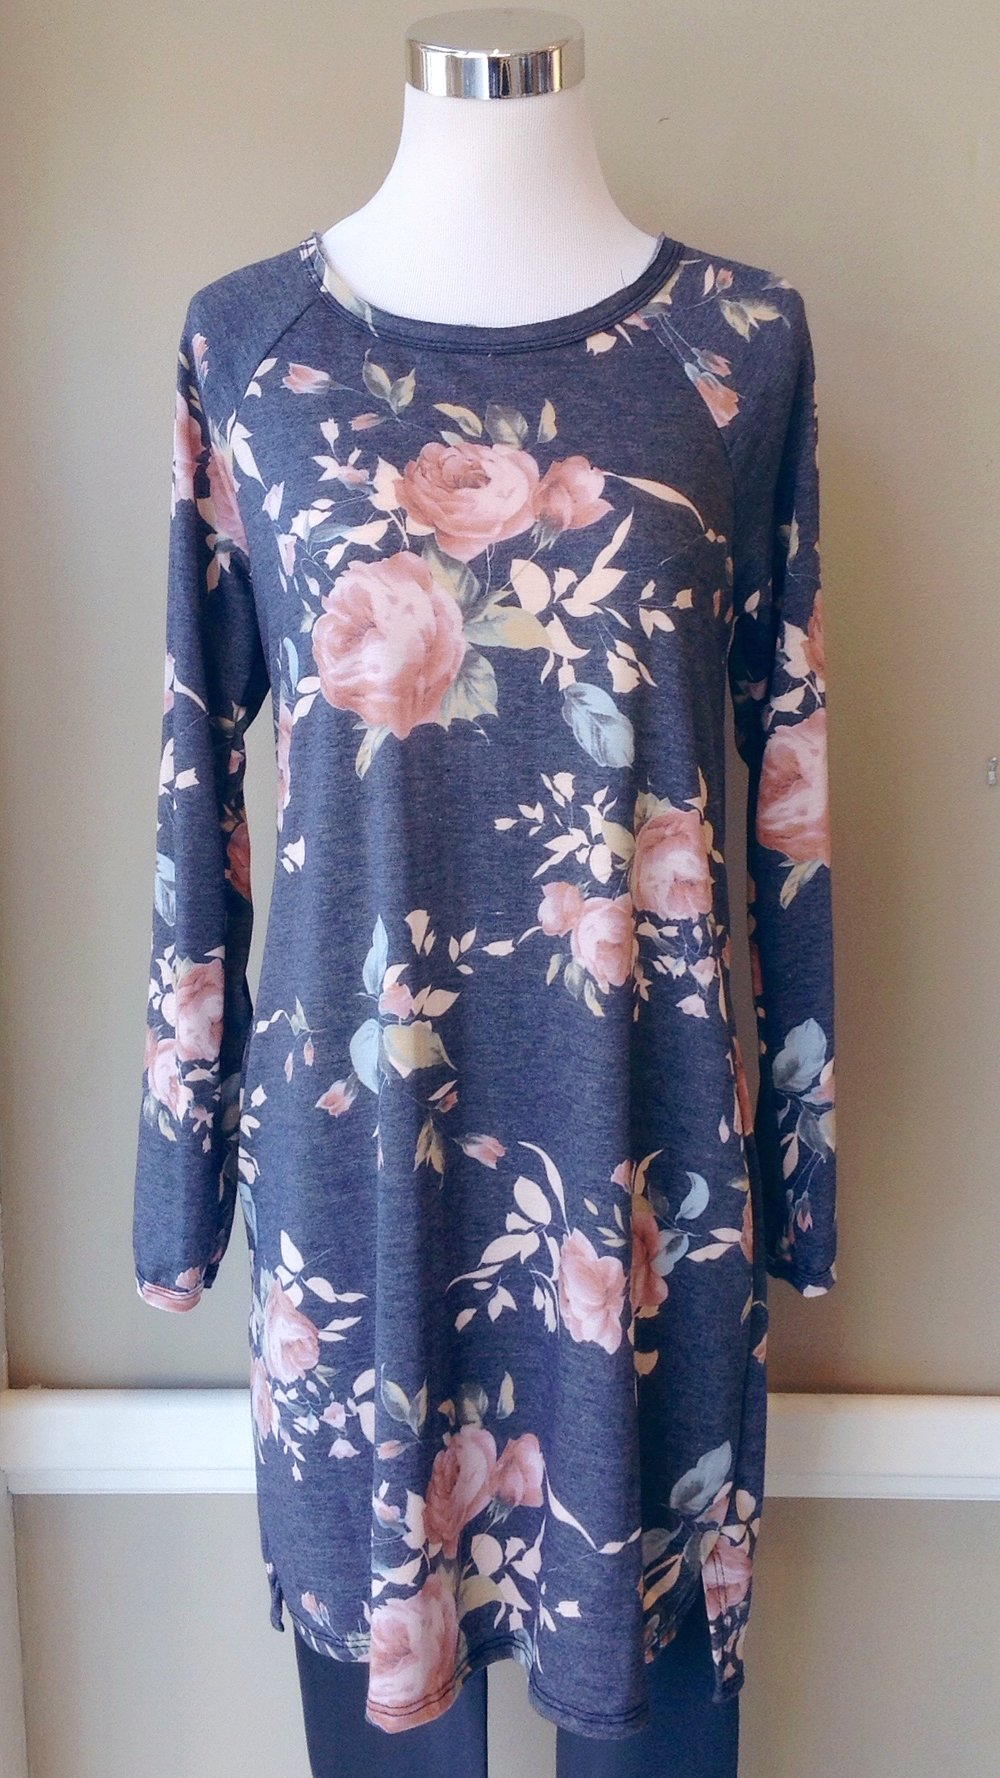 Floral knit tunic dress in grey/pink, $38